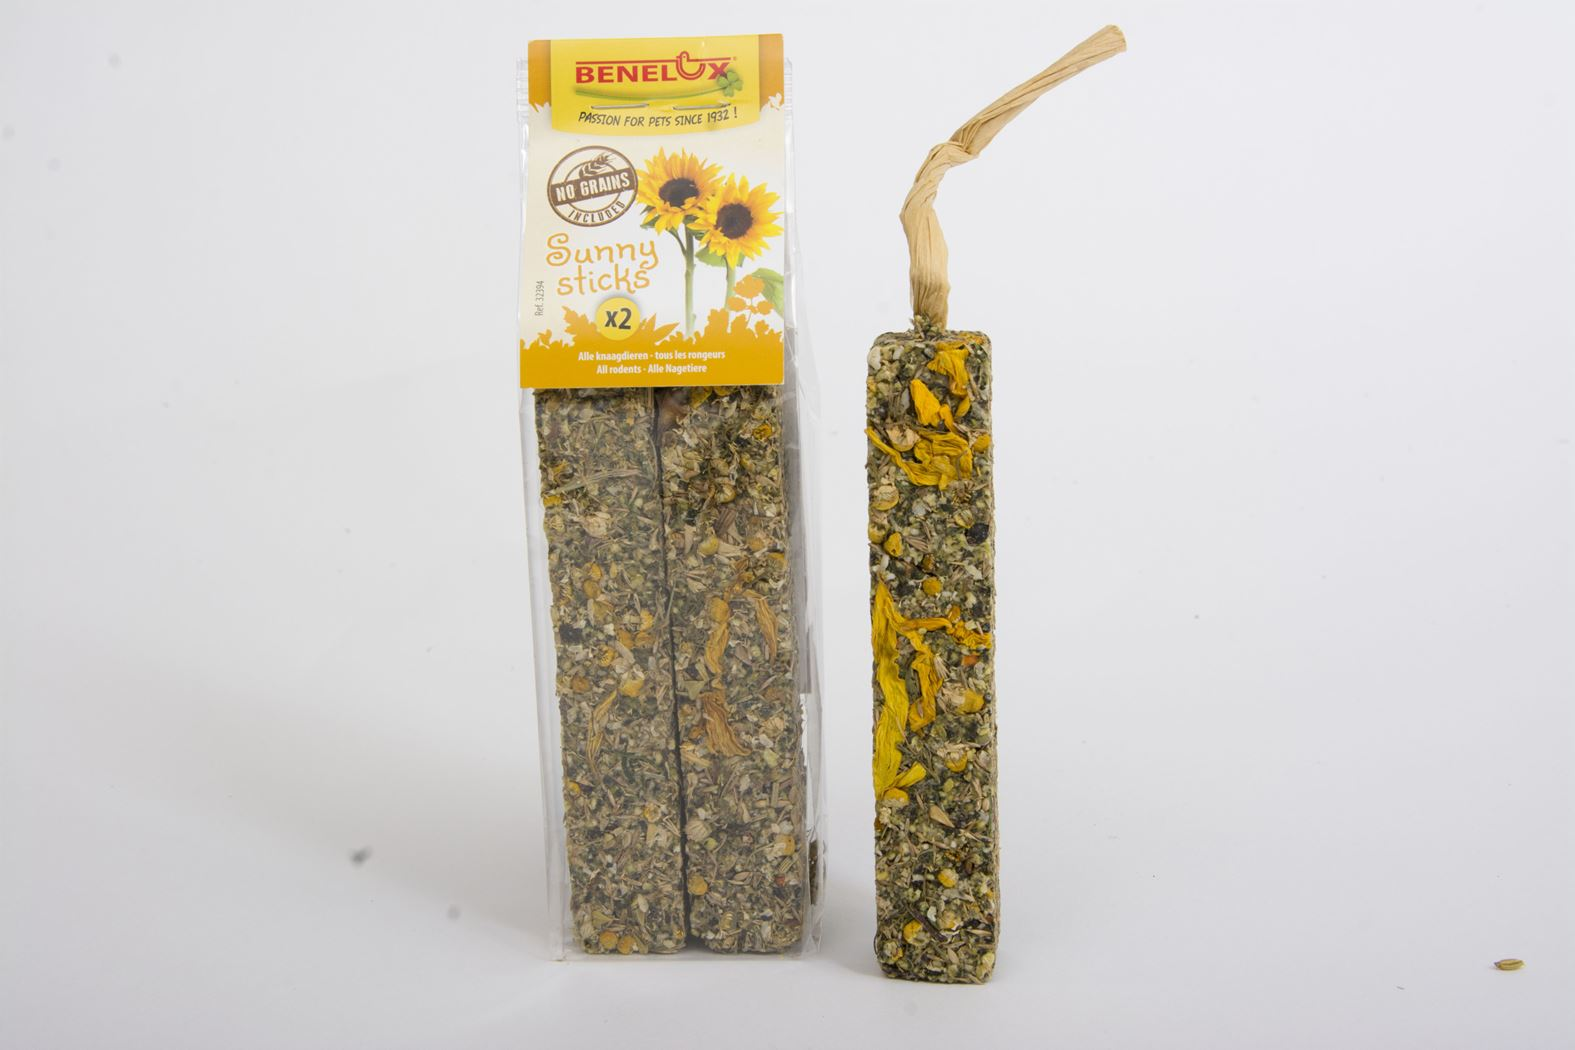 benelux sticks sunny grain free (2sts)